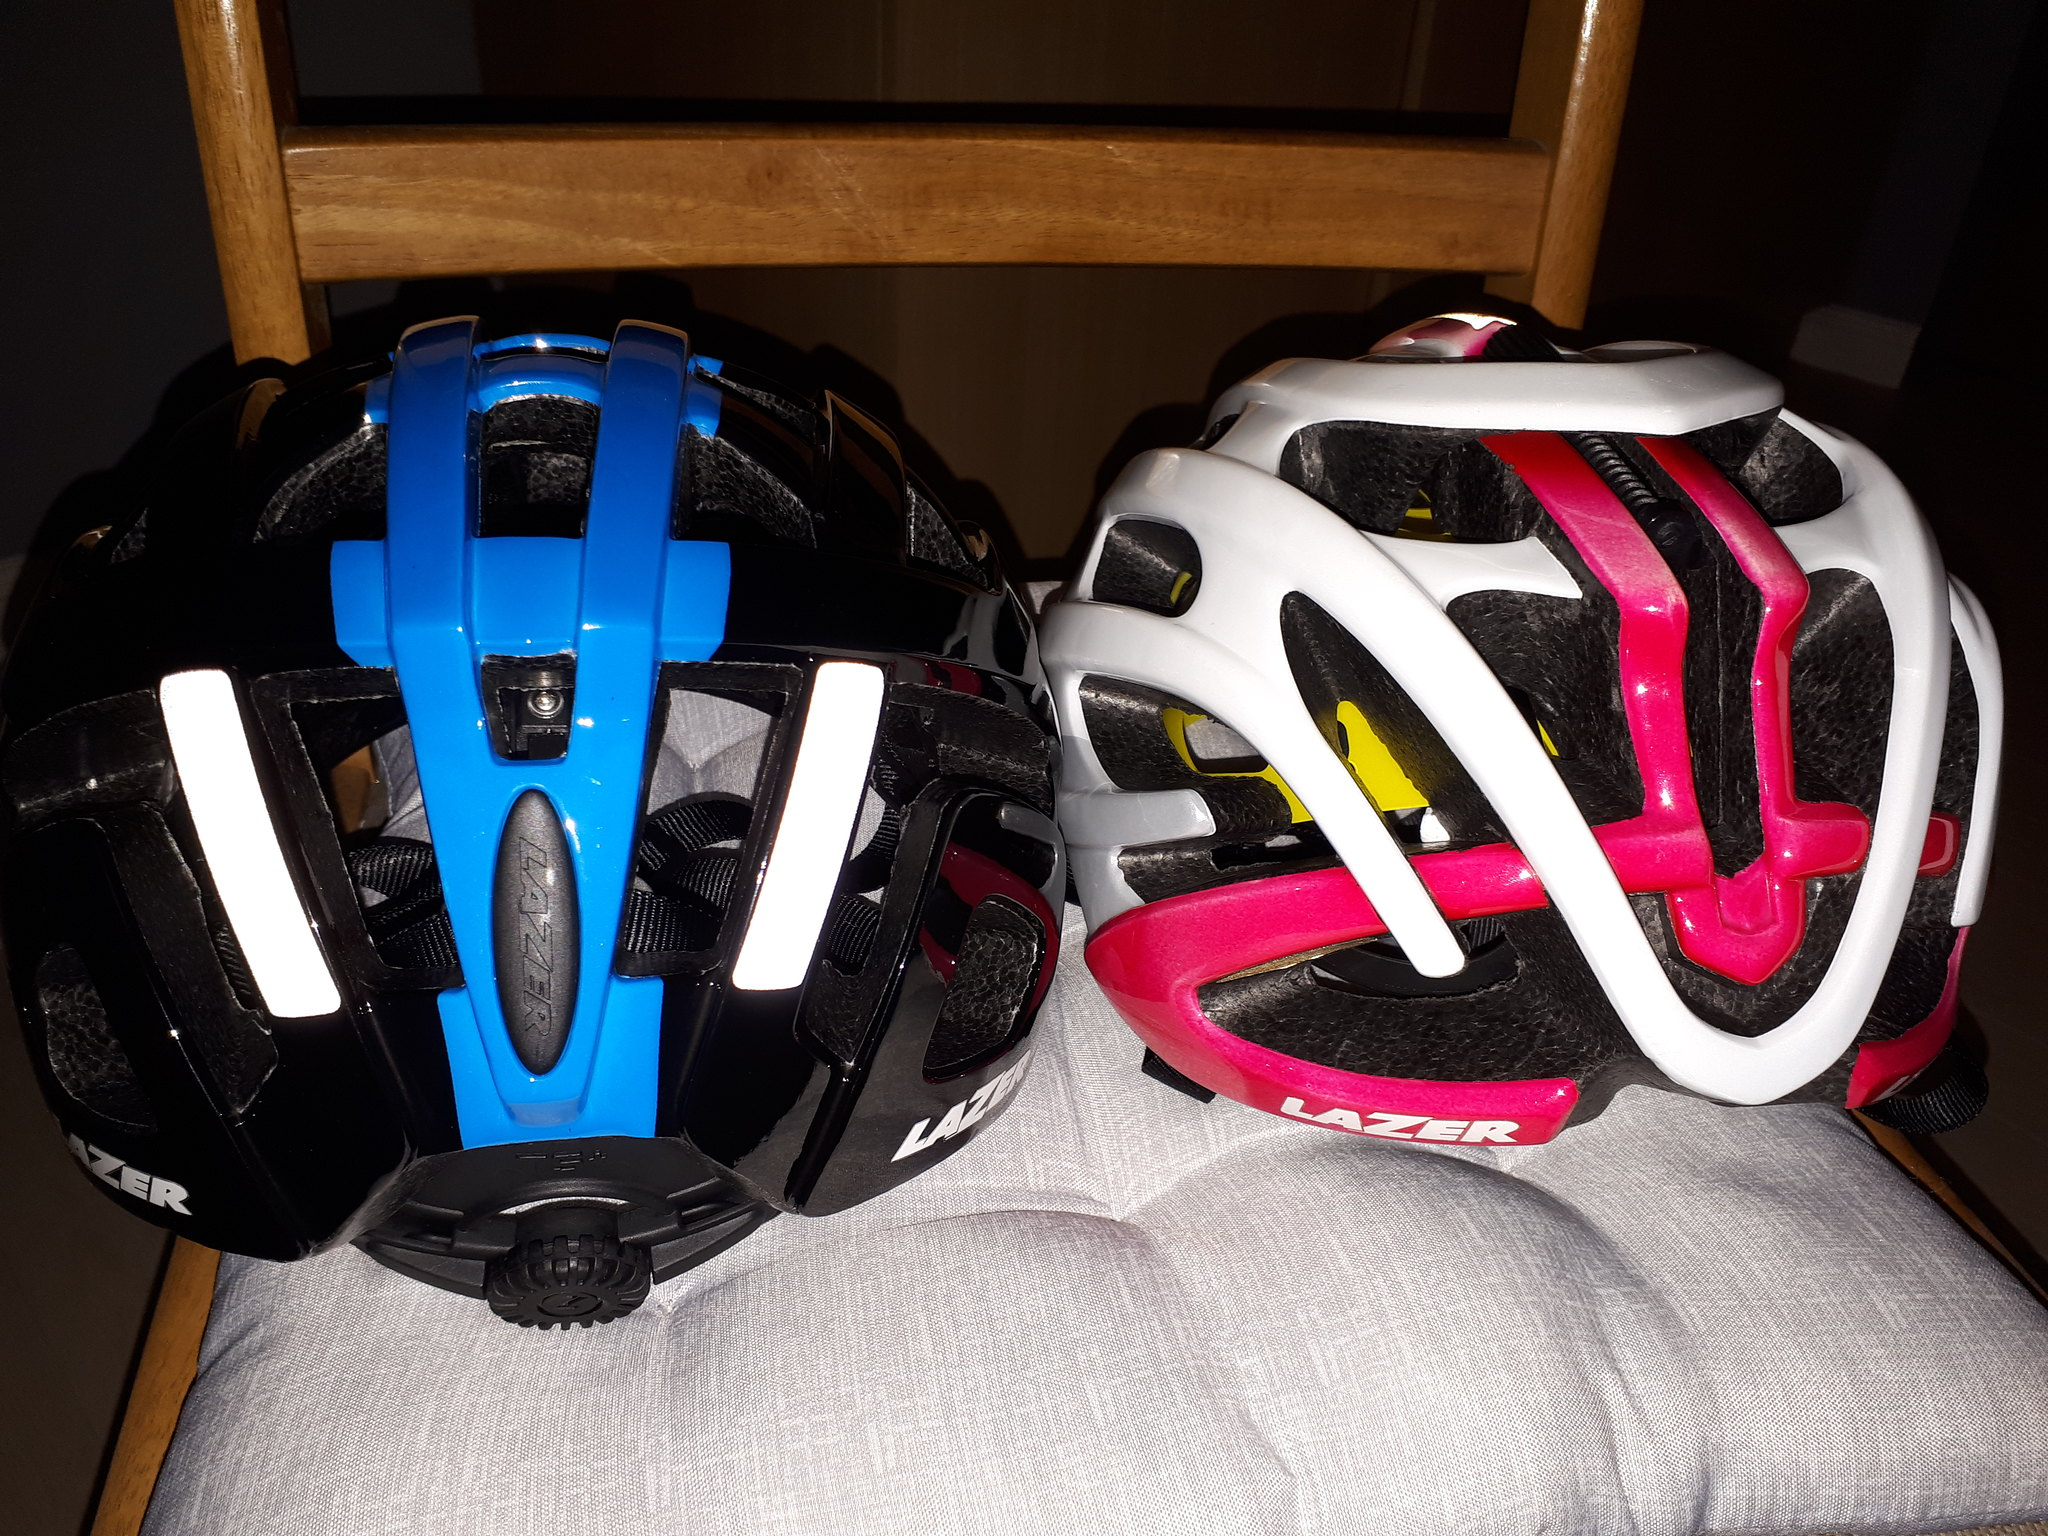 The HALO Reflective Helmet Band is a 1 5/8